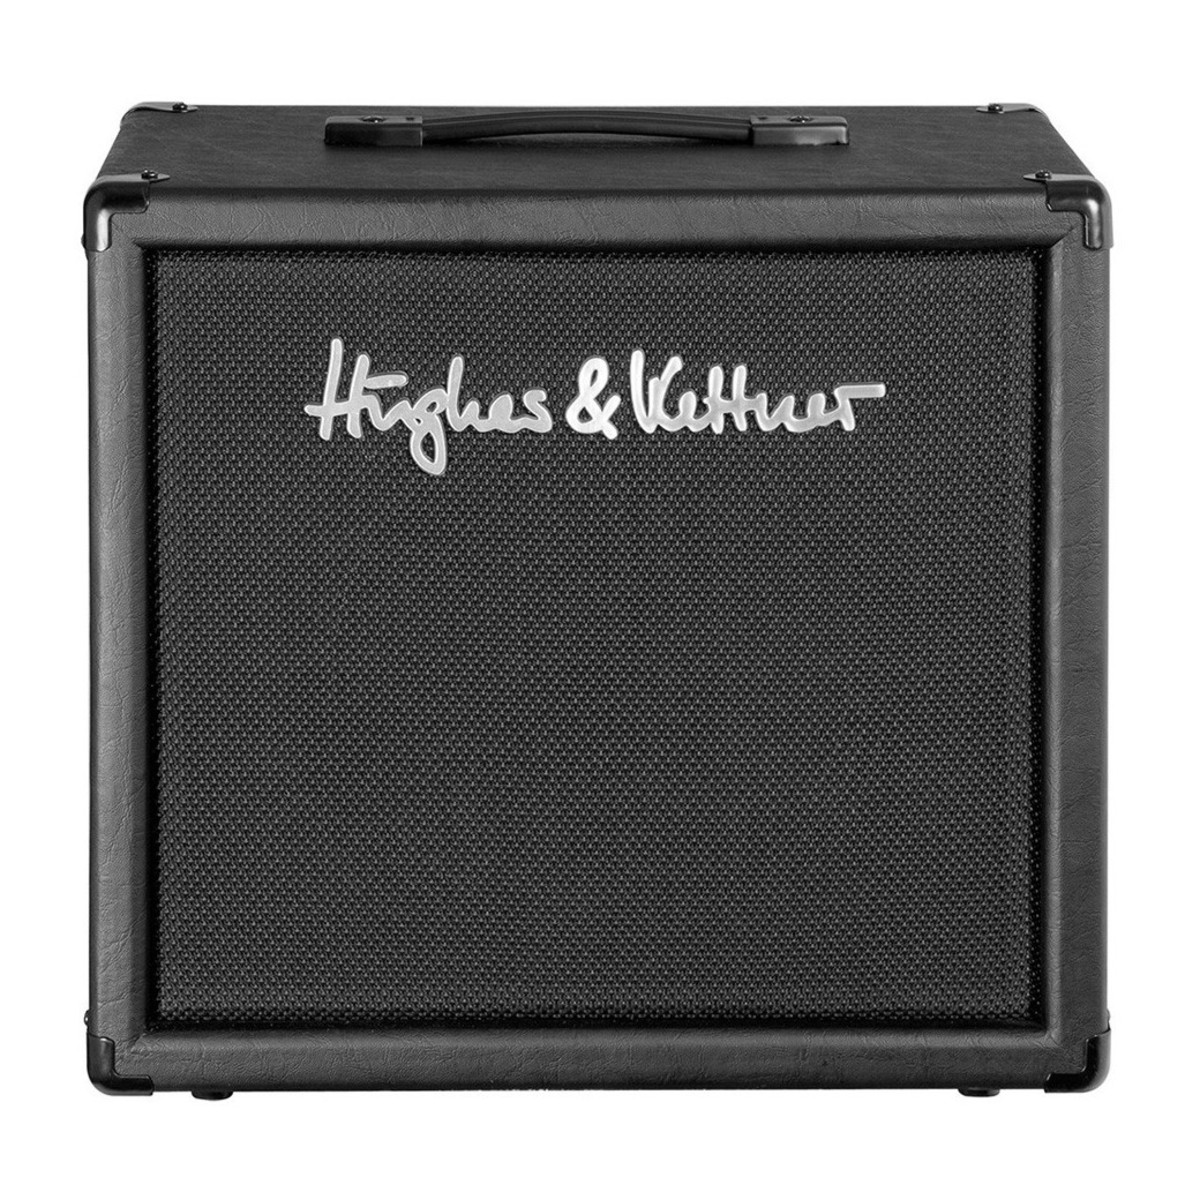 Click to view product details and reviews for Hughes Kettner Tm 112 Cabinet 1x12.